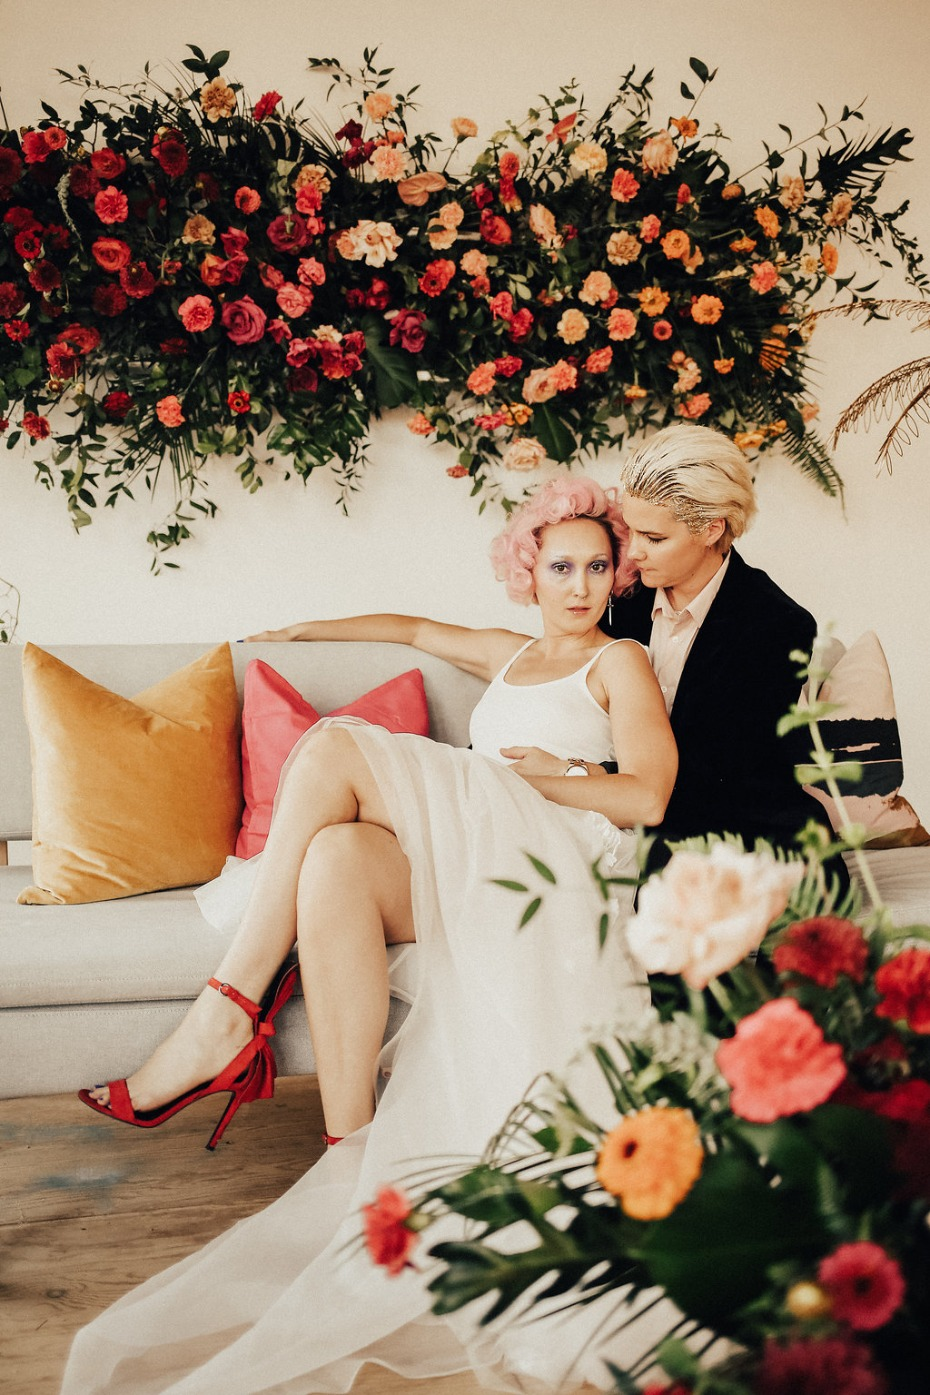 Bright red heels for the bride